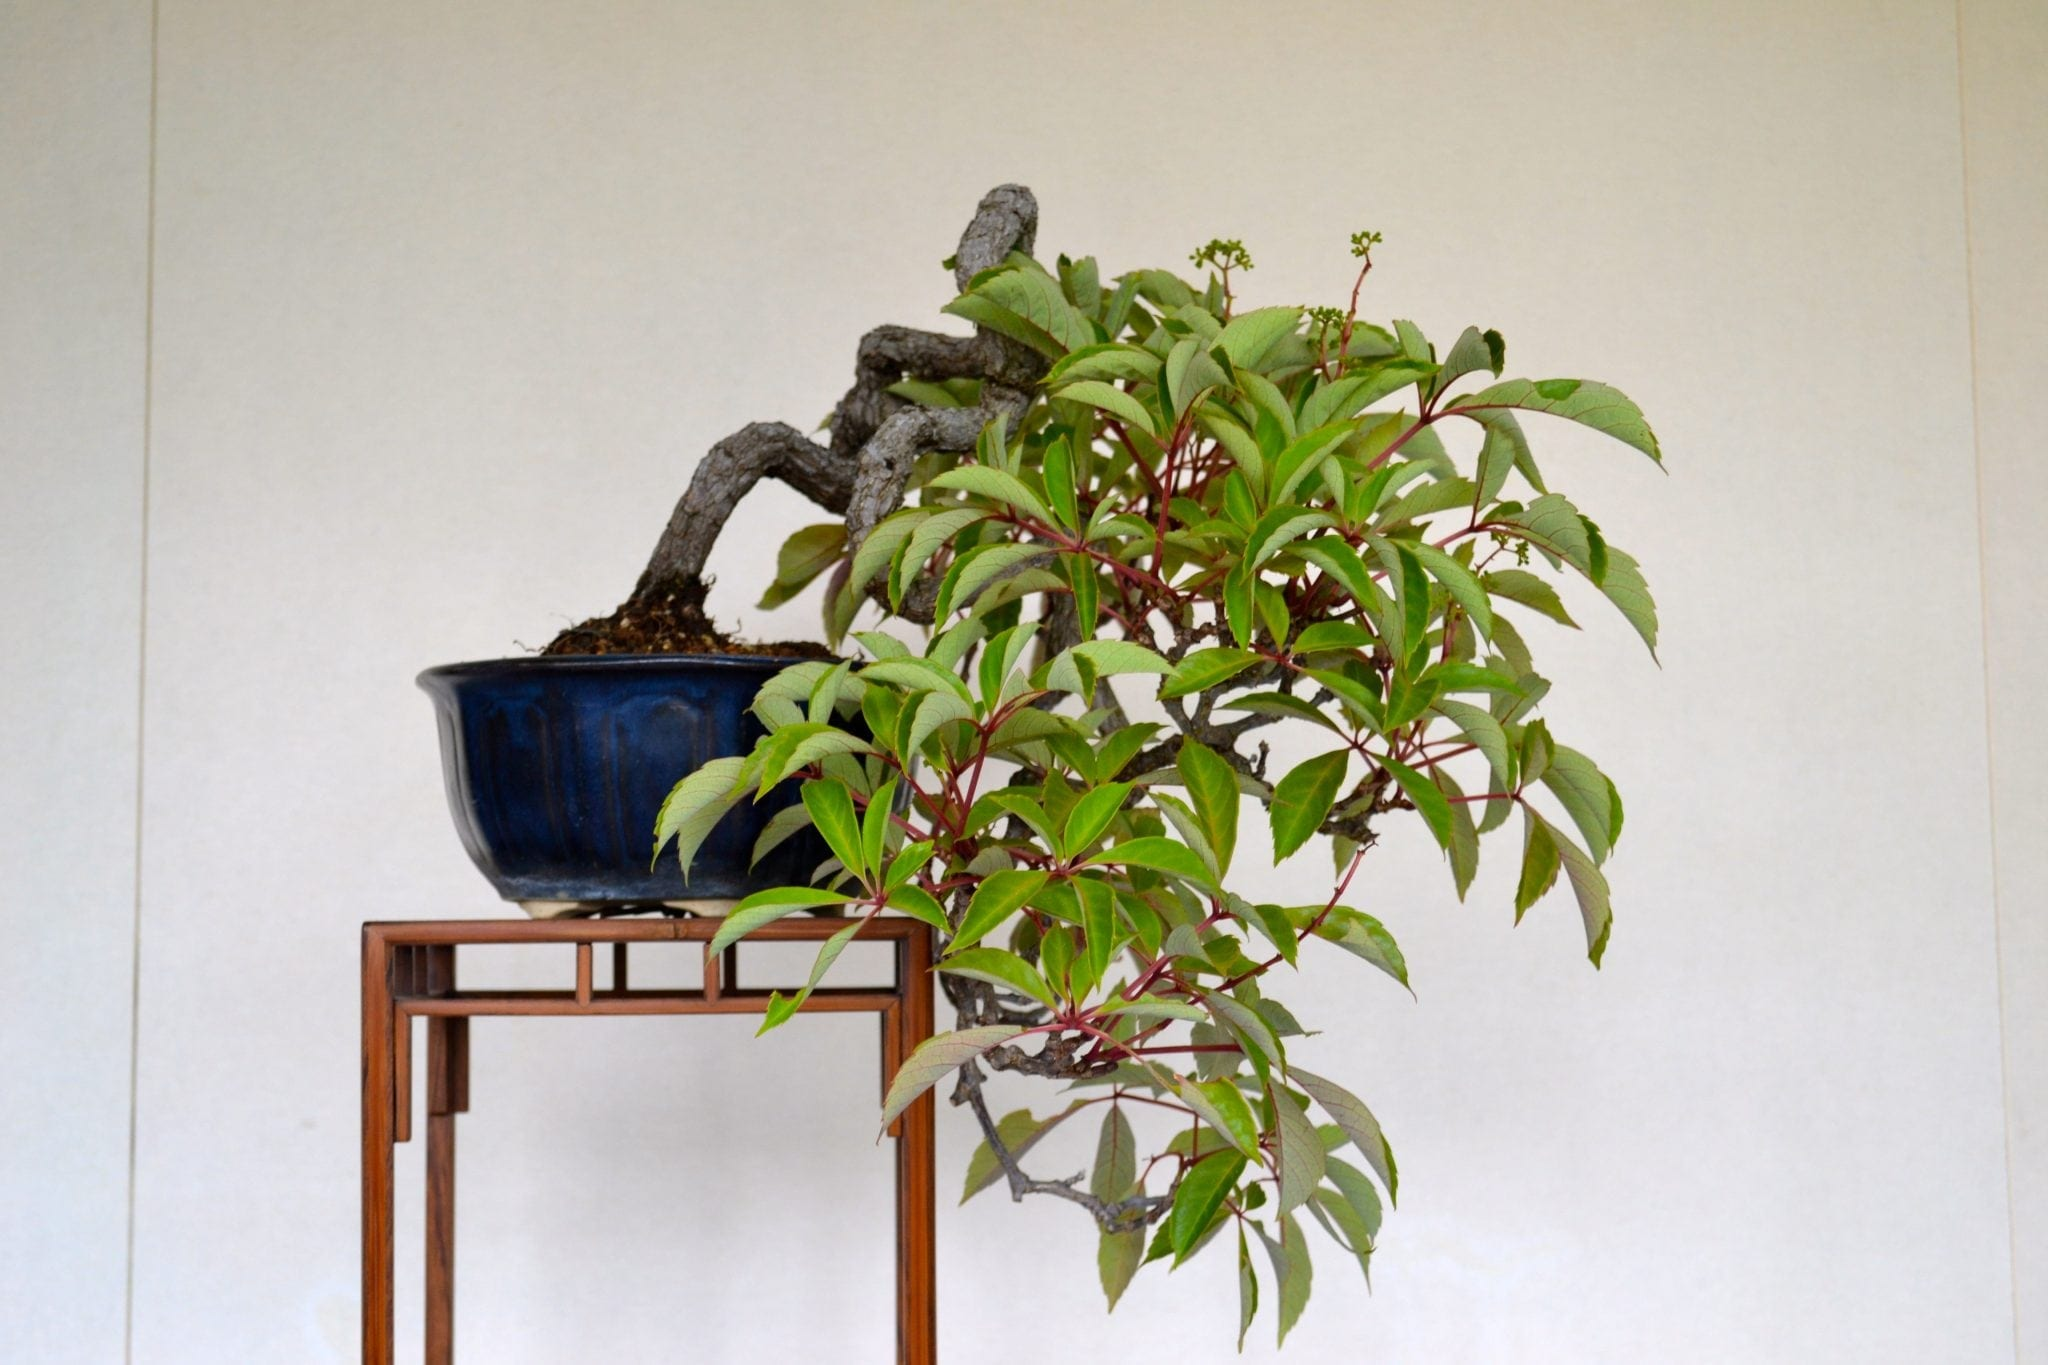 Bonsai Tree Harvesting Wild Plants